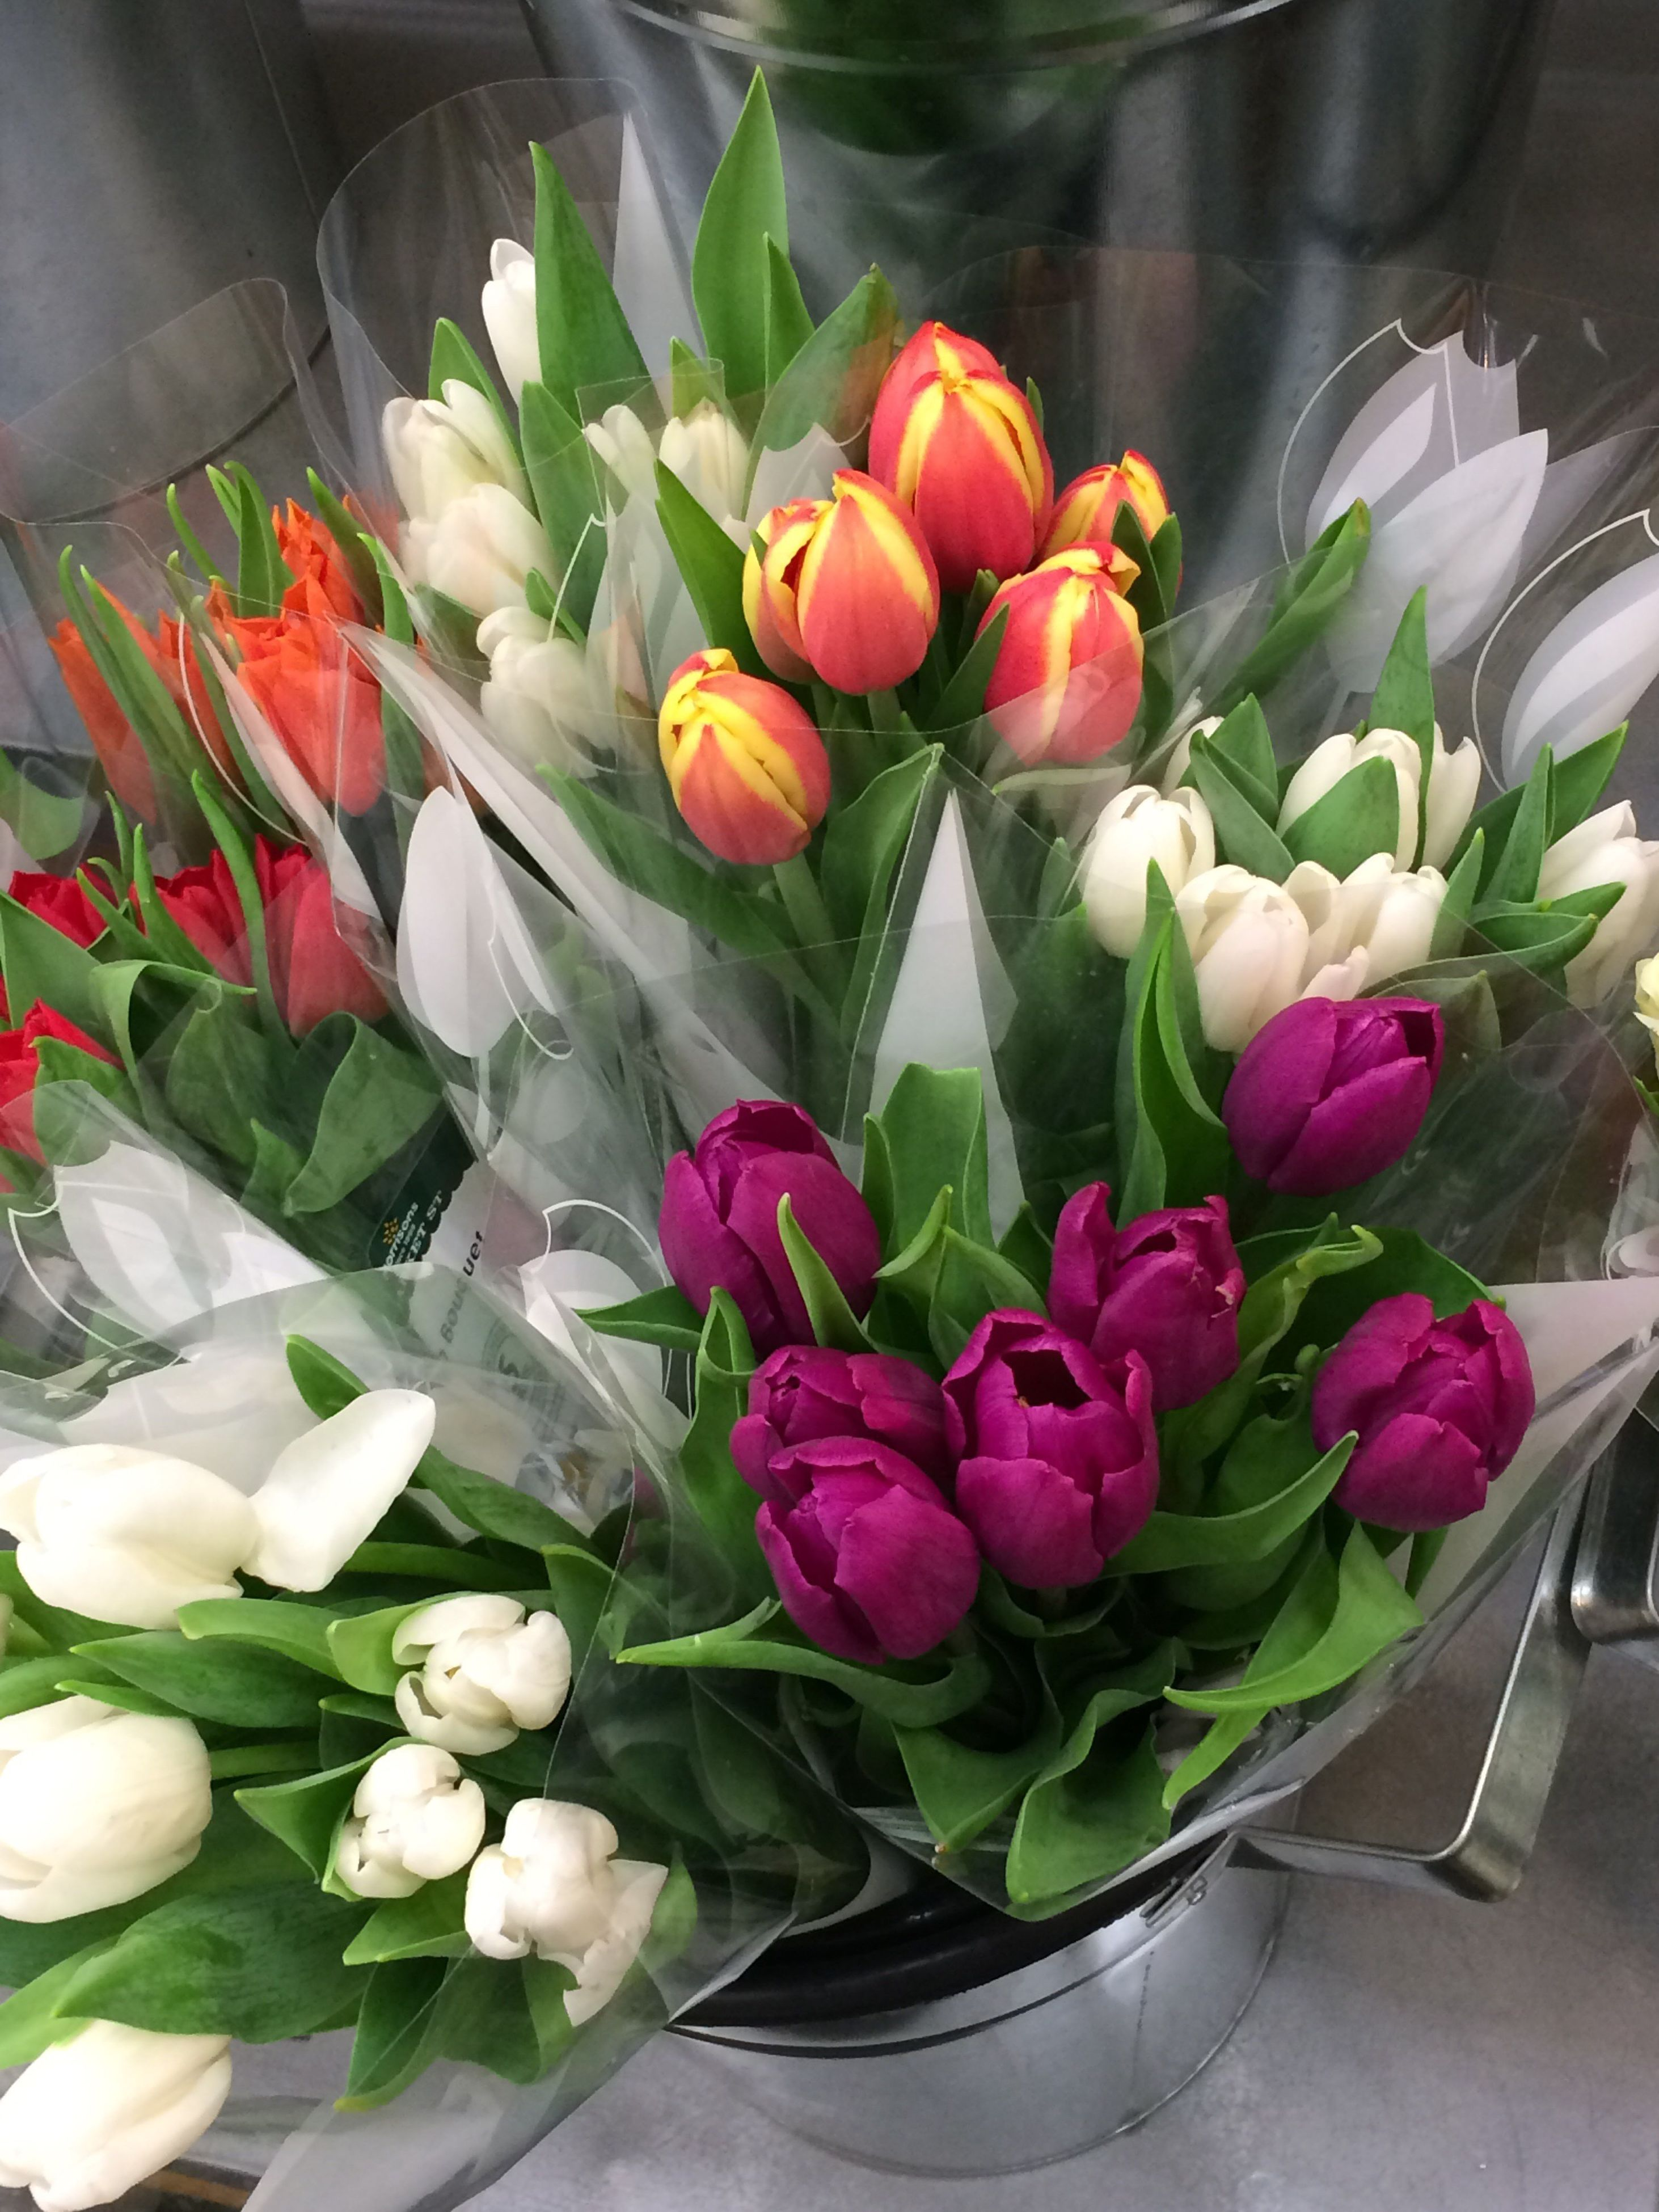 flower, petal, freshness, fragility, flower head, beauty in nature, tulip, bouquet, nature, no people, indoors, leaf, close-up, day, florist